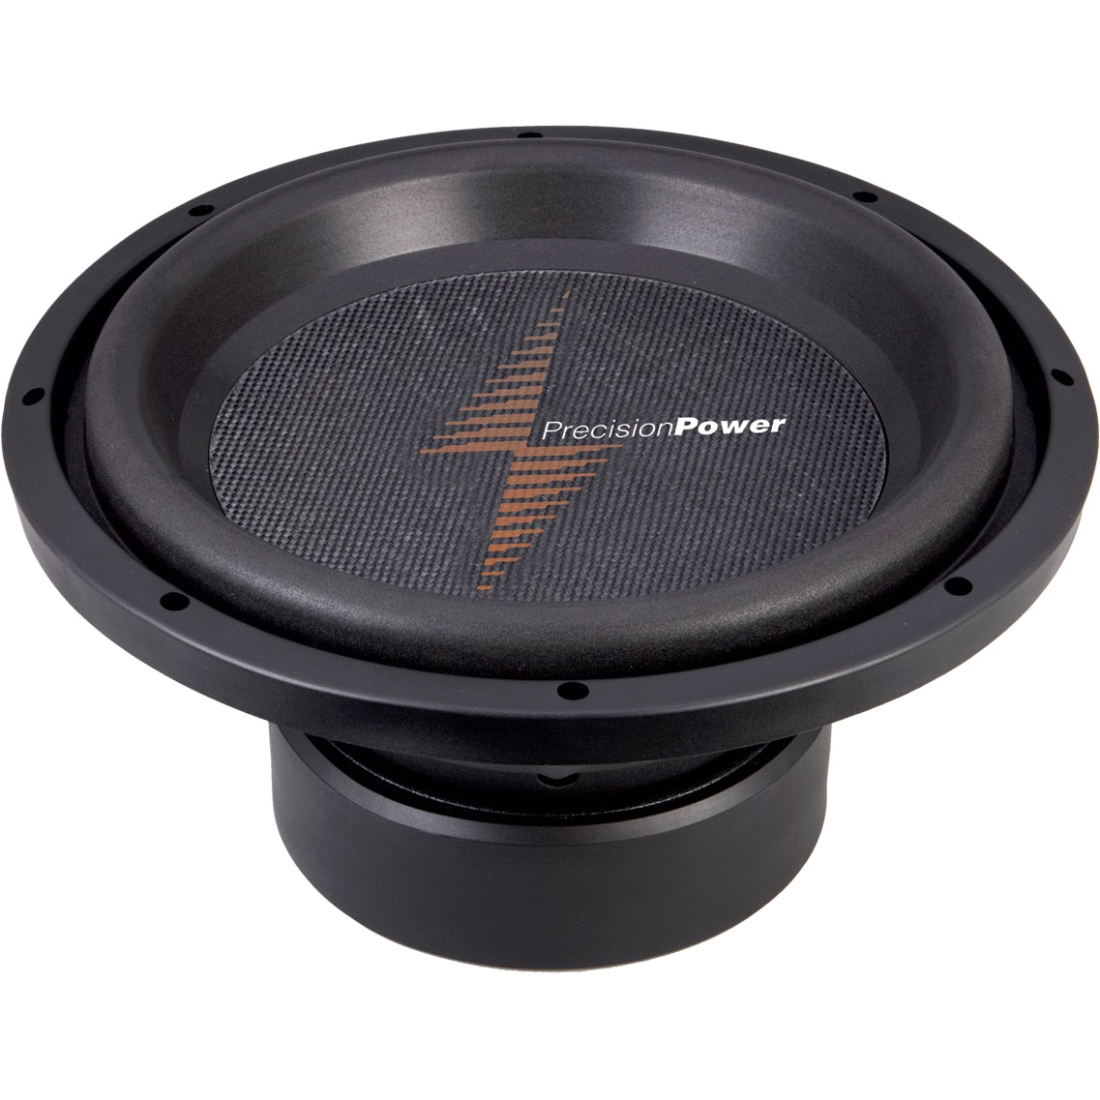 "Precision Power PH-10 Phantom Series 2.5"" DVC 2Ω Subwoofer, 10"", 700 Watts"